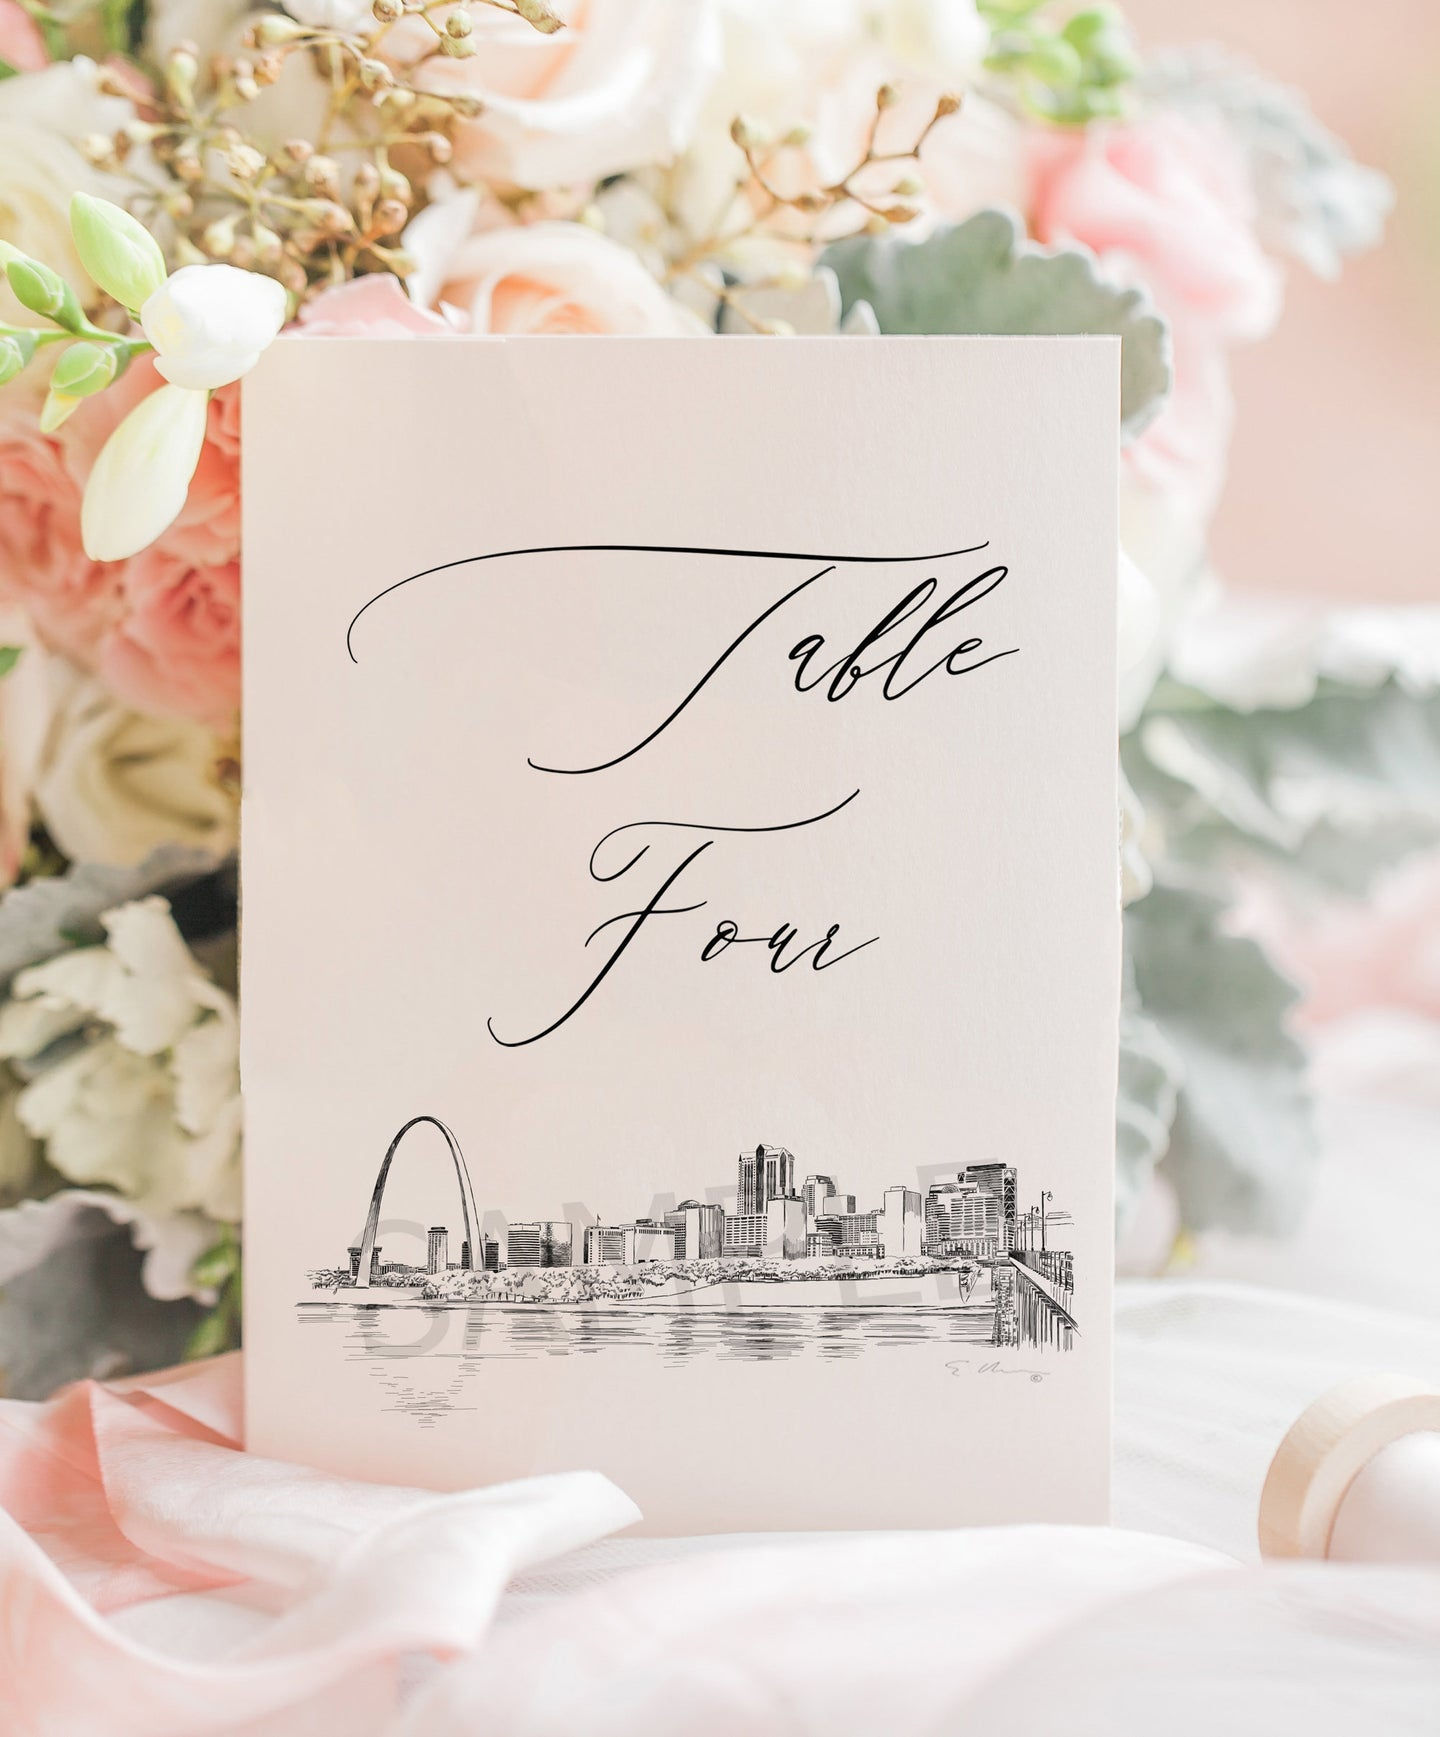 St. Louis Skyline Wedding Table Numbers (1-10), Saint Louis Wedding Table Numbers, Missouri, Day of Event, Reception, Rehearsal Dinner